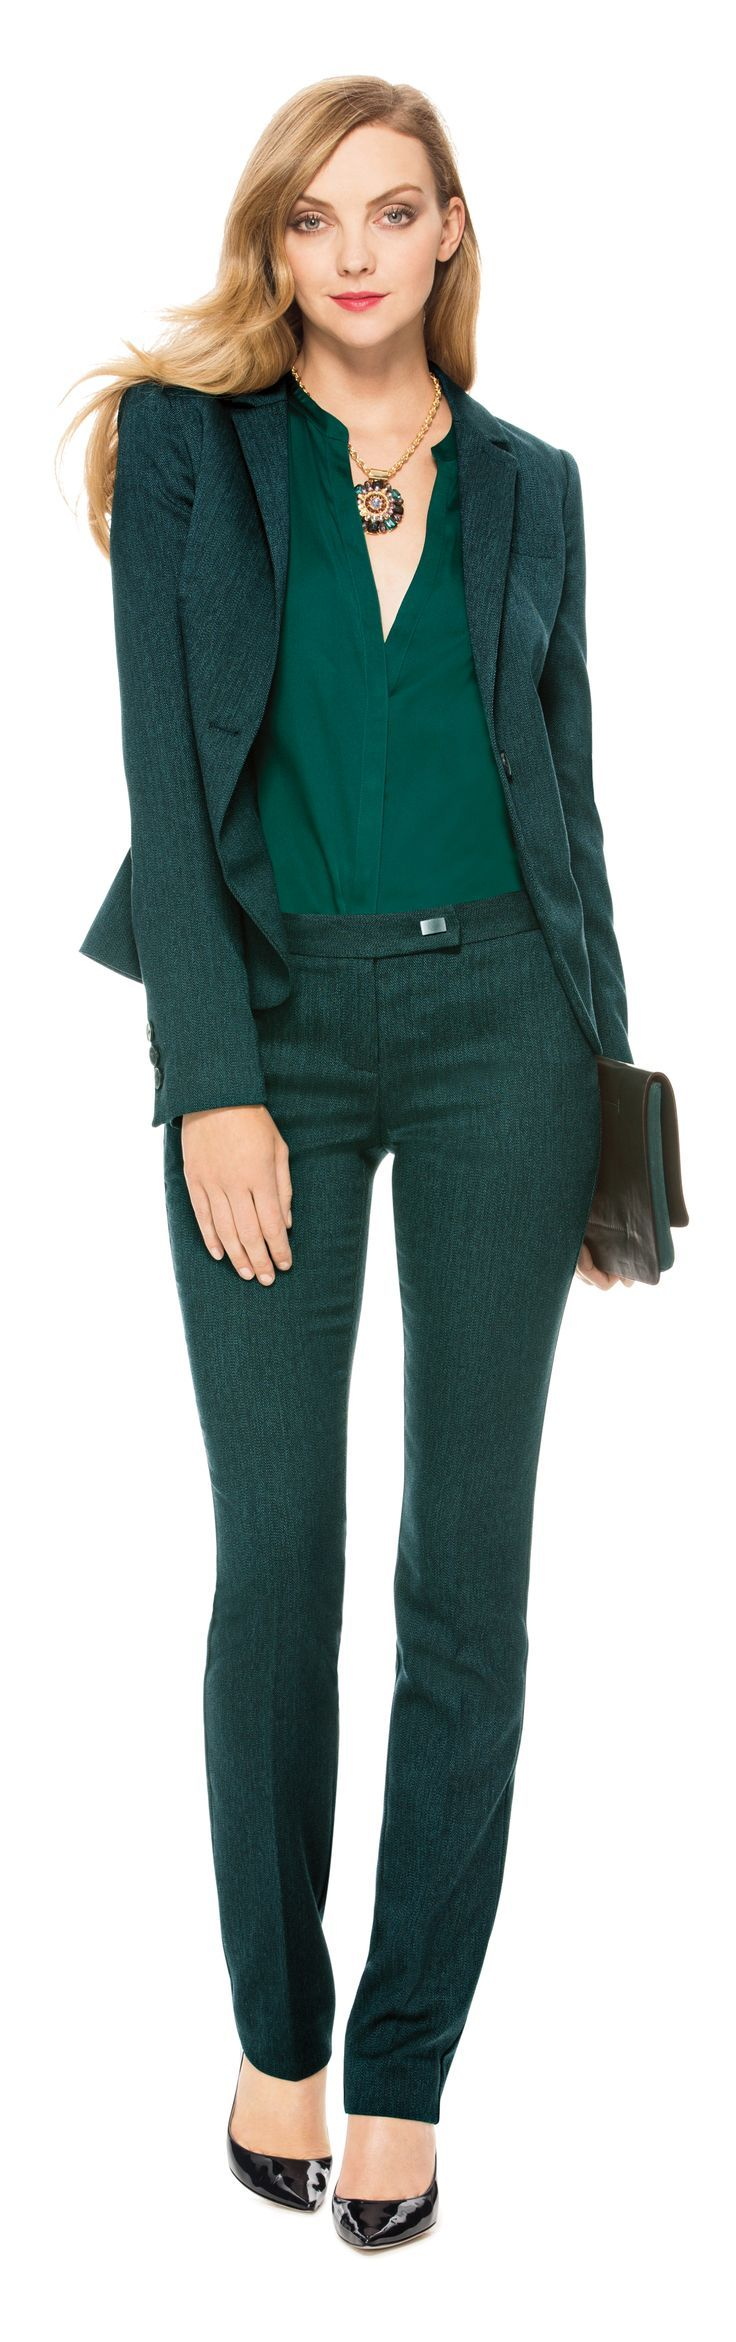 green-dark-slim-pants-green-dark-top-blouse-green-dark-jacket-blazer-howtowear-fashion-style-outfit-fall-winter-black-shoe-pumps-office-necklace-mono-blonde-work.jpg